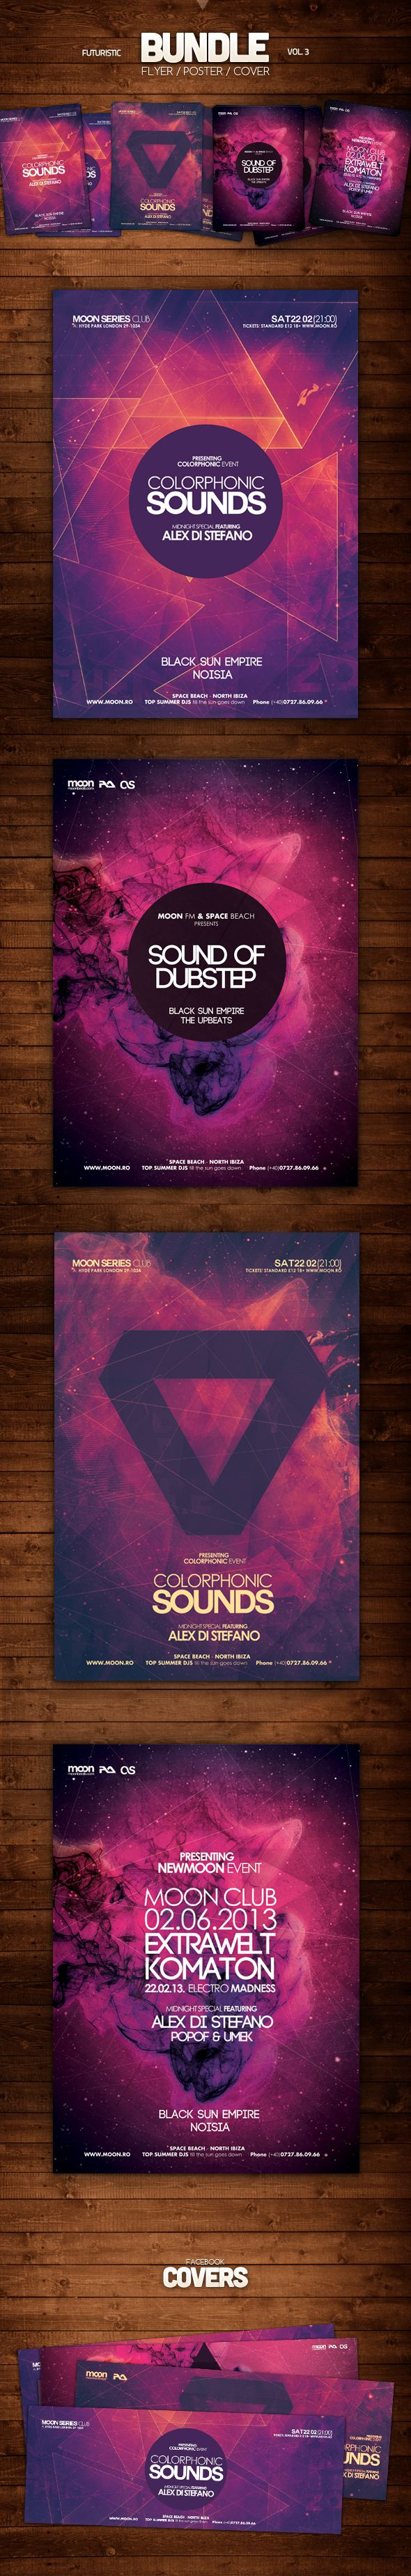 Futuristic Flyer Bundle Vol 3 on Behance event flyer & poster design - graphic design